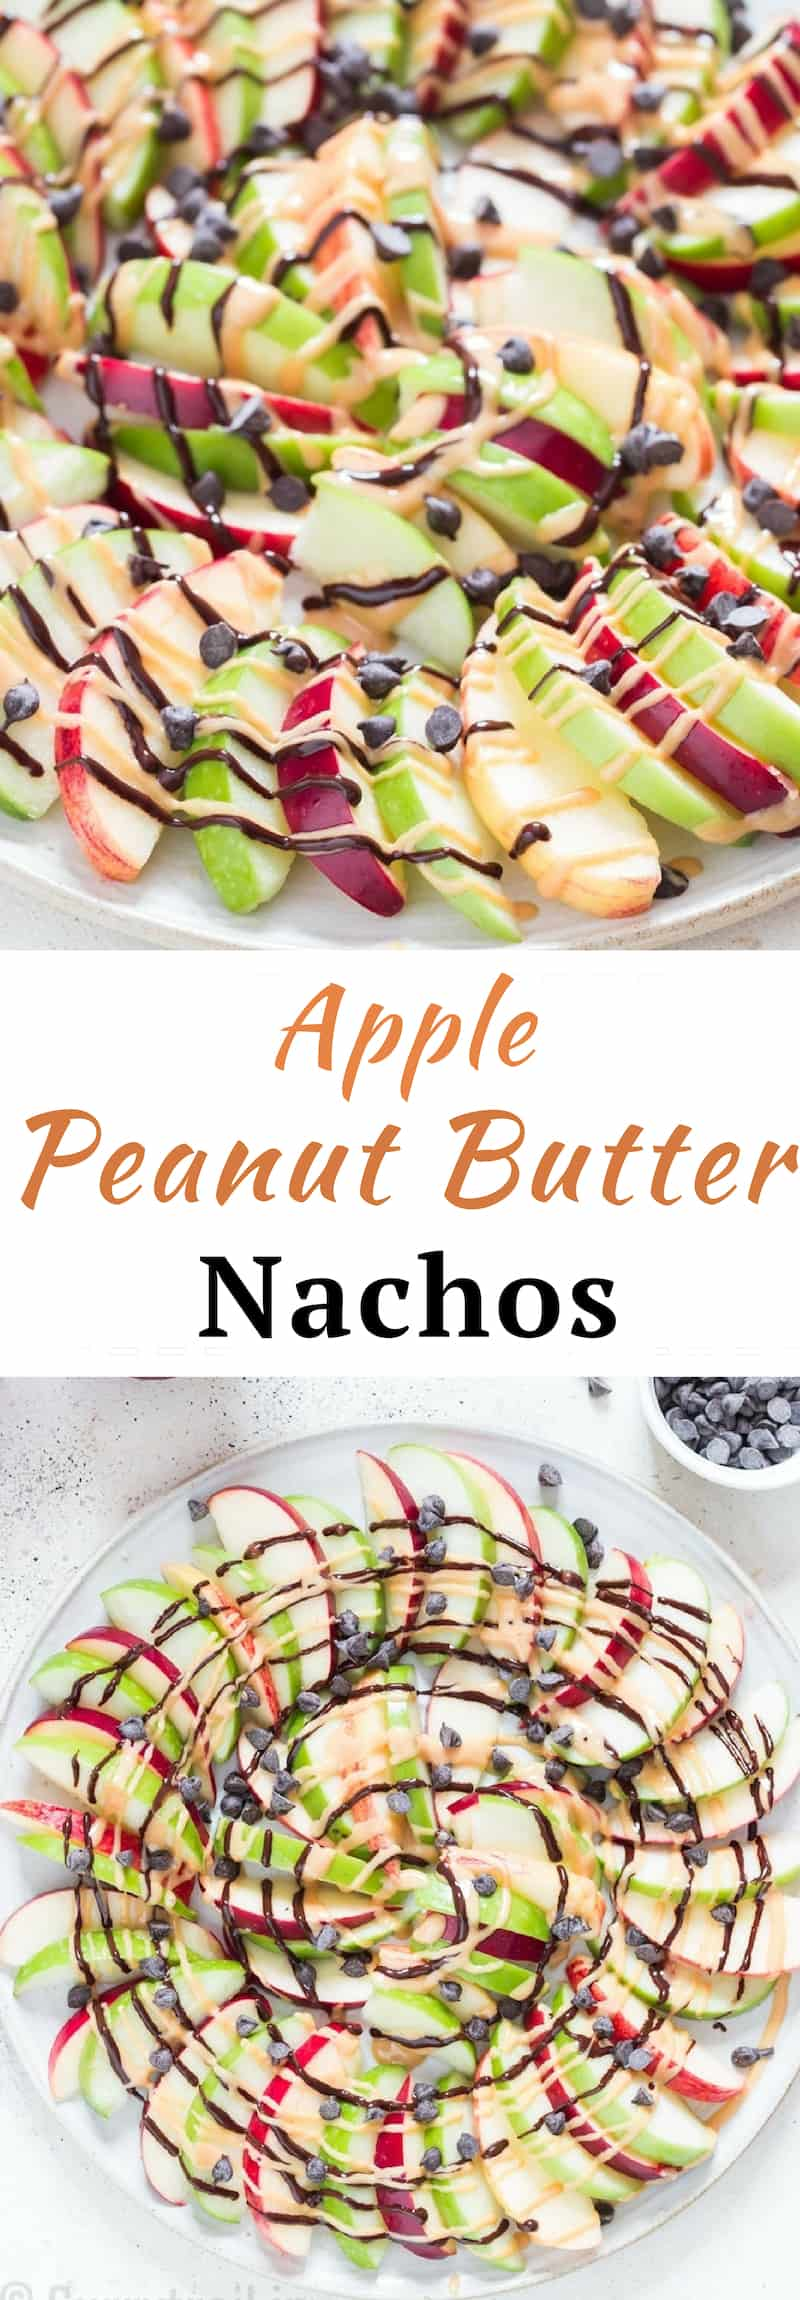 apple and peanut butter nachos with text overlay